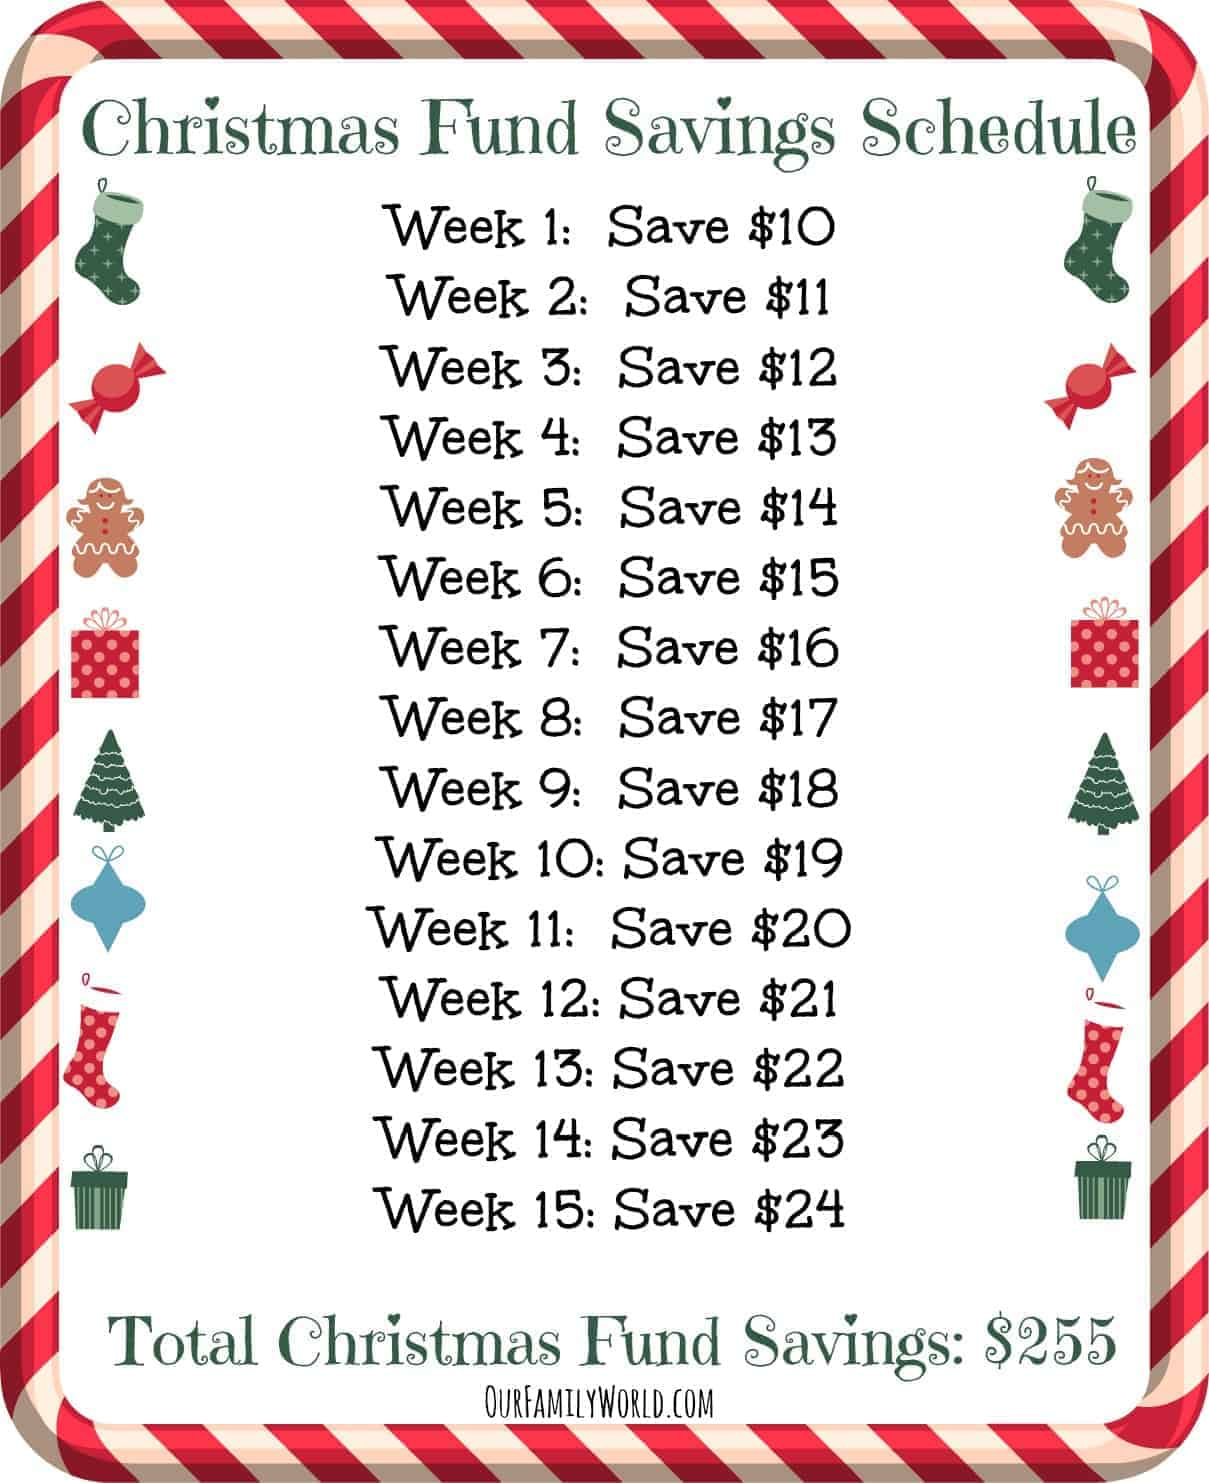 Create A $255 Christmas Fund In Just 15 Weeks